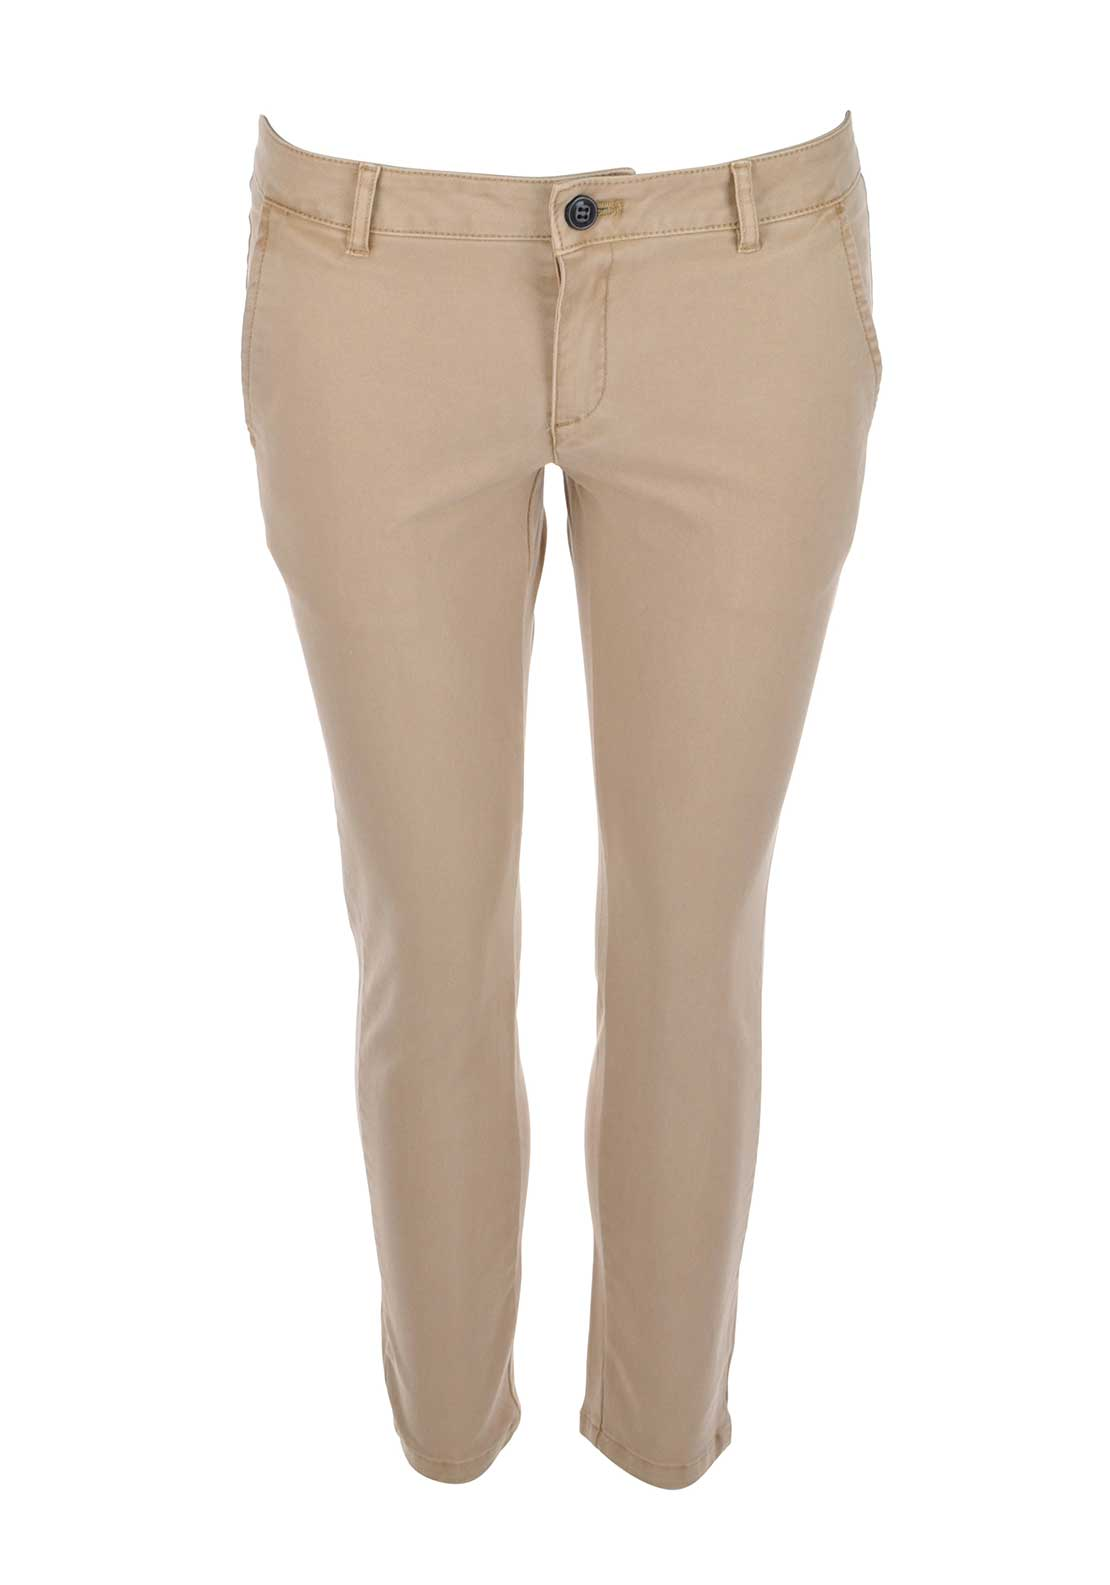 Silvian Heach 7/8 Cotton Chinos, Beige